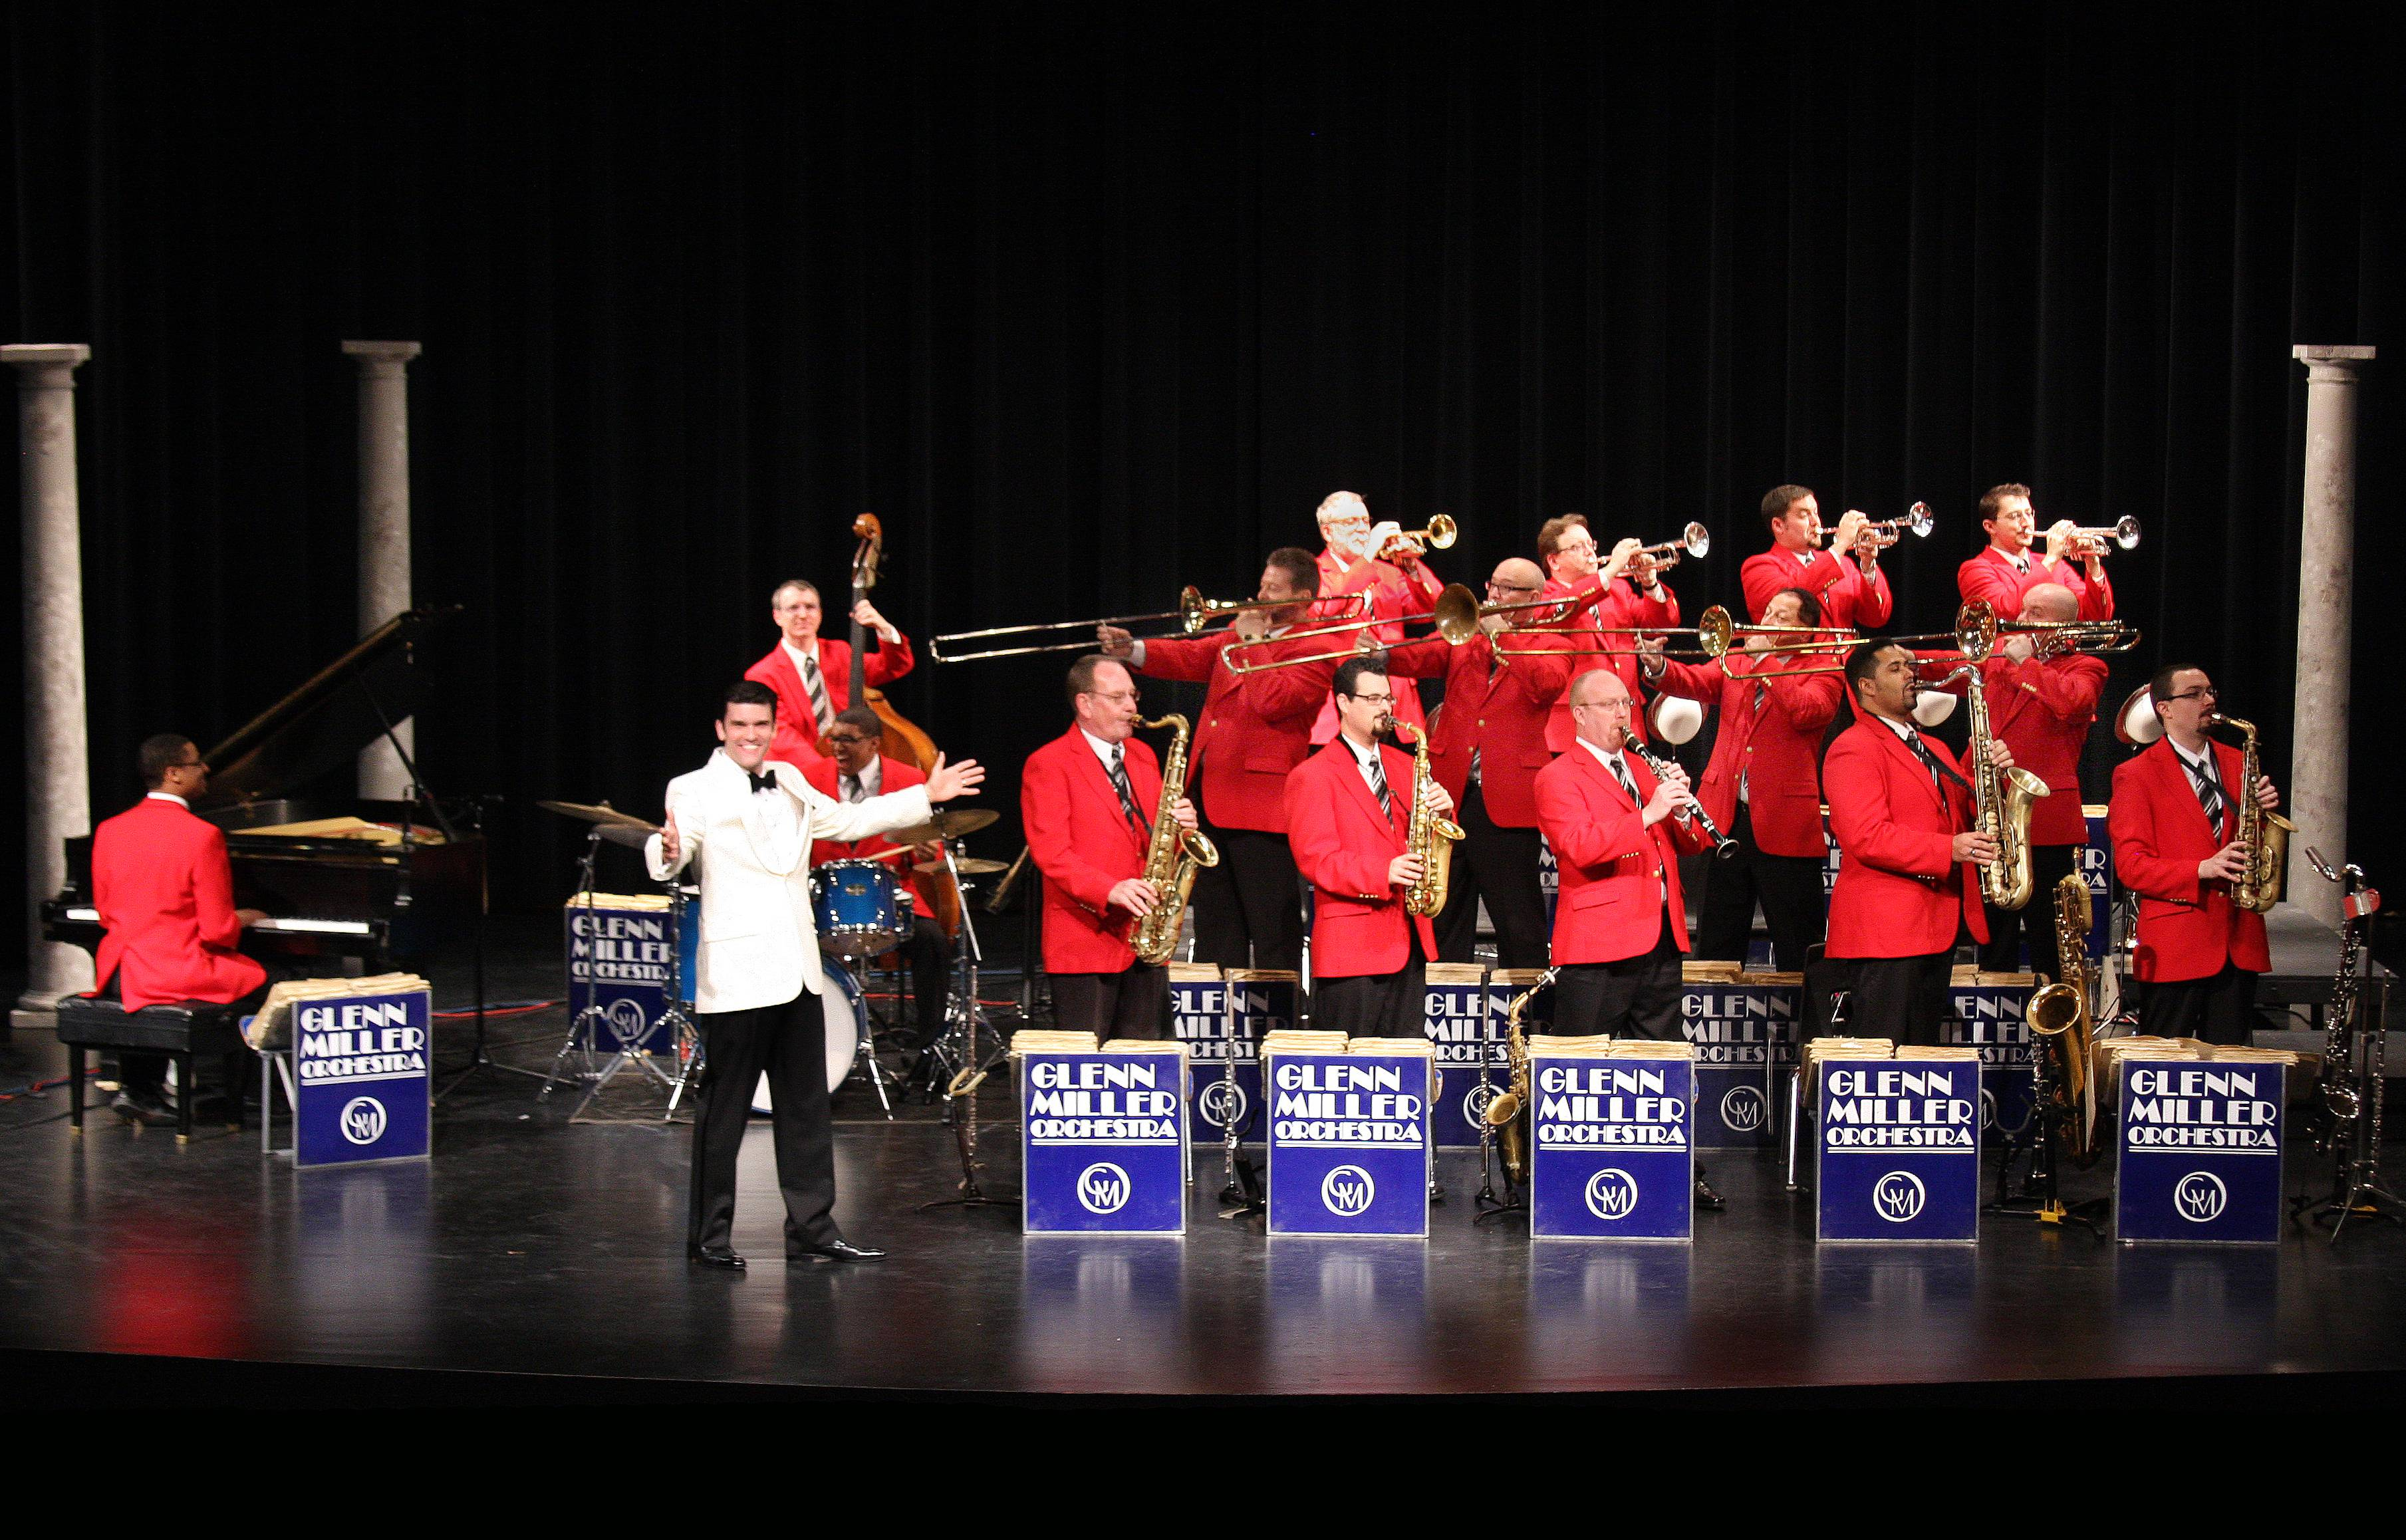 The Glenn Miller Orchestra will make its only public appearance in Illinois this summer on June 11 at The Holmstad in Batavia.